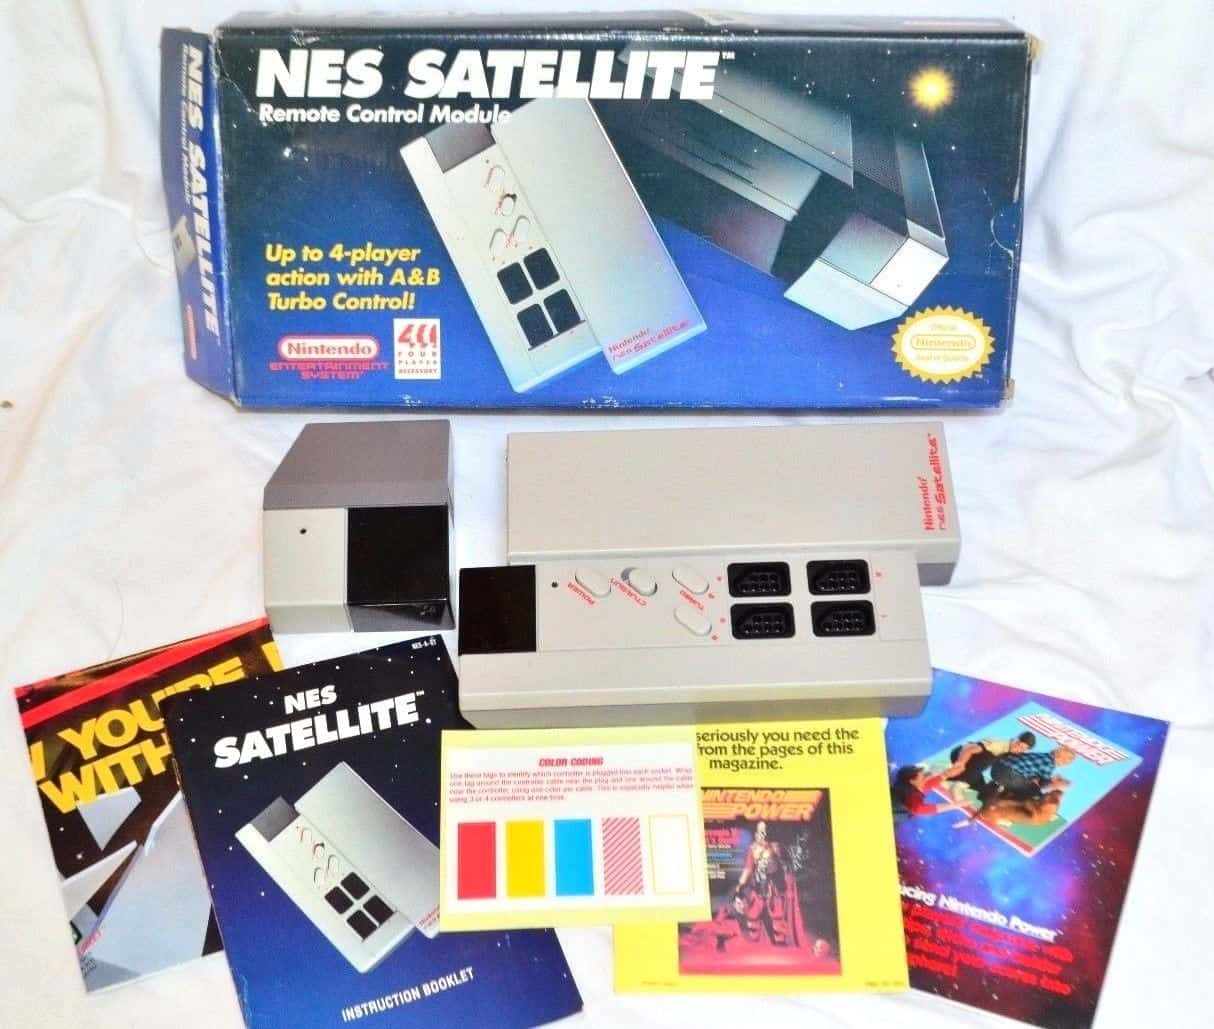 a picture of a NES satellite